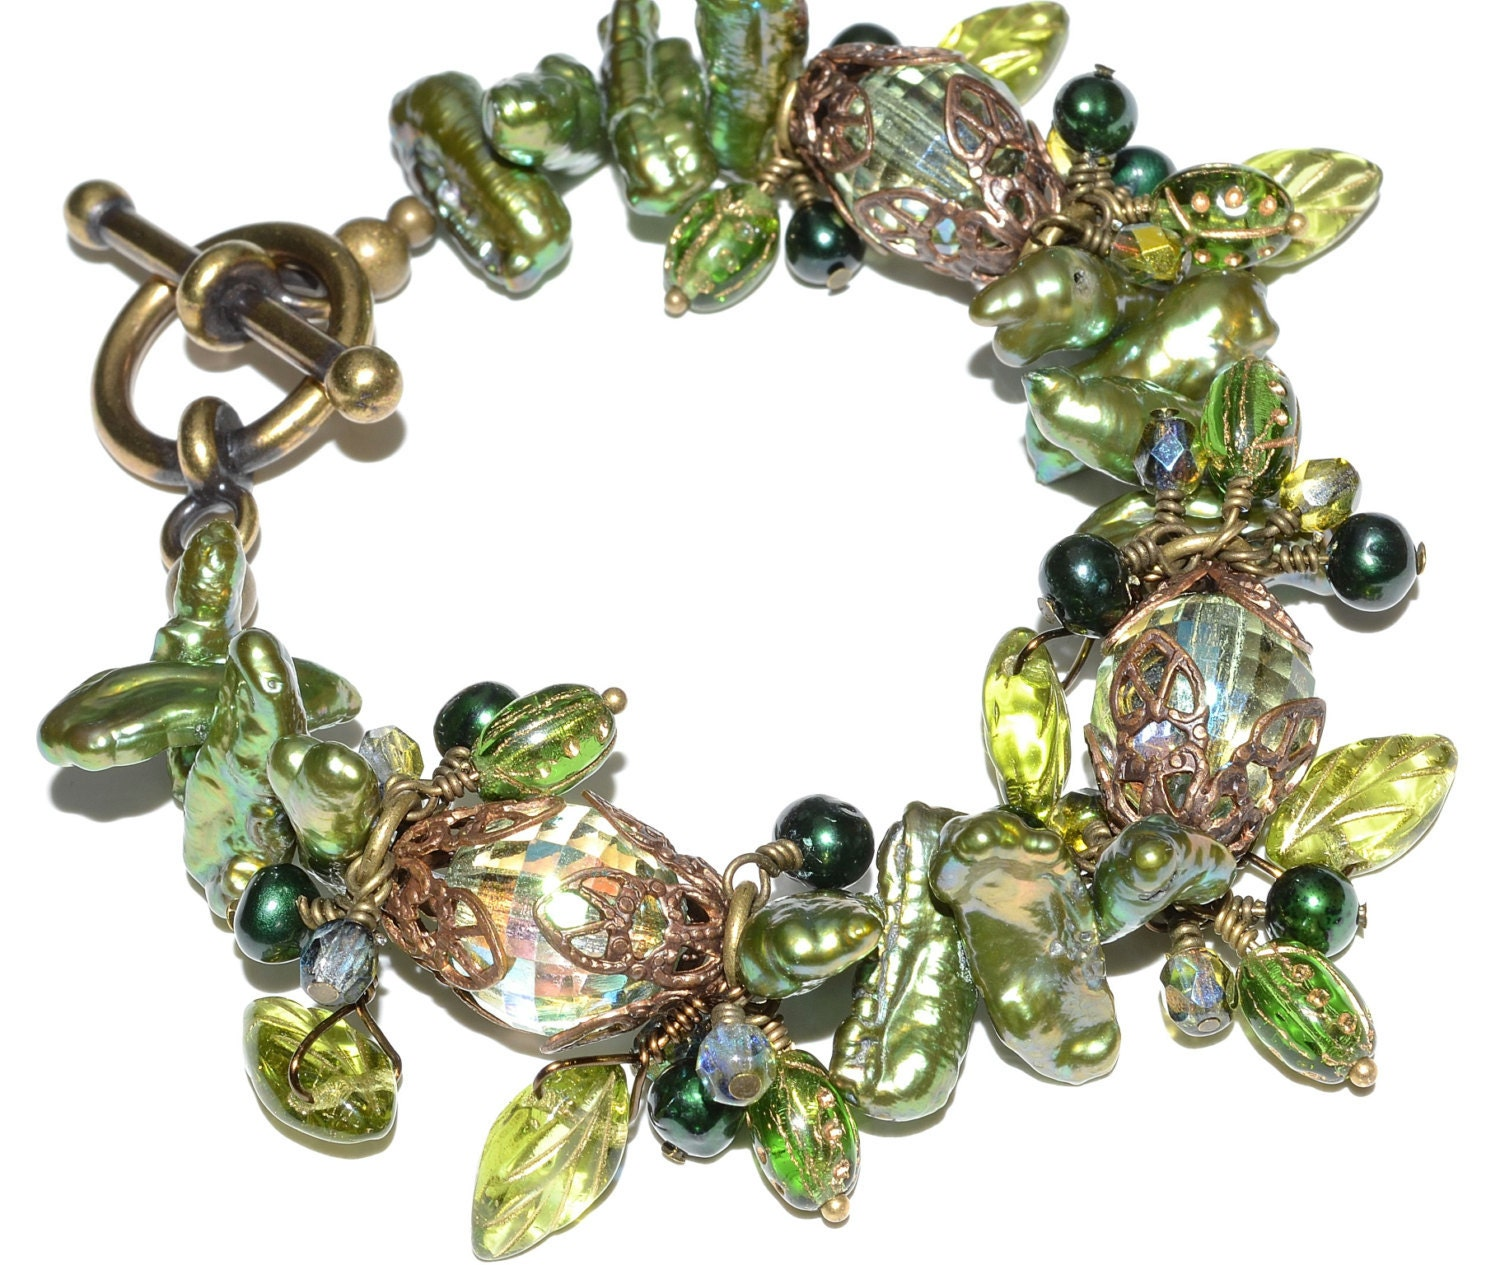 Chunky Green Pearl And Crystal Vintaj Charm Bracelet, Czech Glass Leaves And Ladybugs,Toggle, Nature Inspired Romantic Jewelry - SoManyPrettyBeads